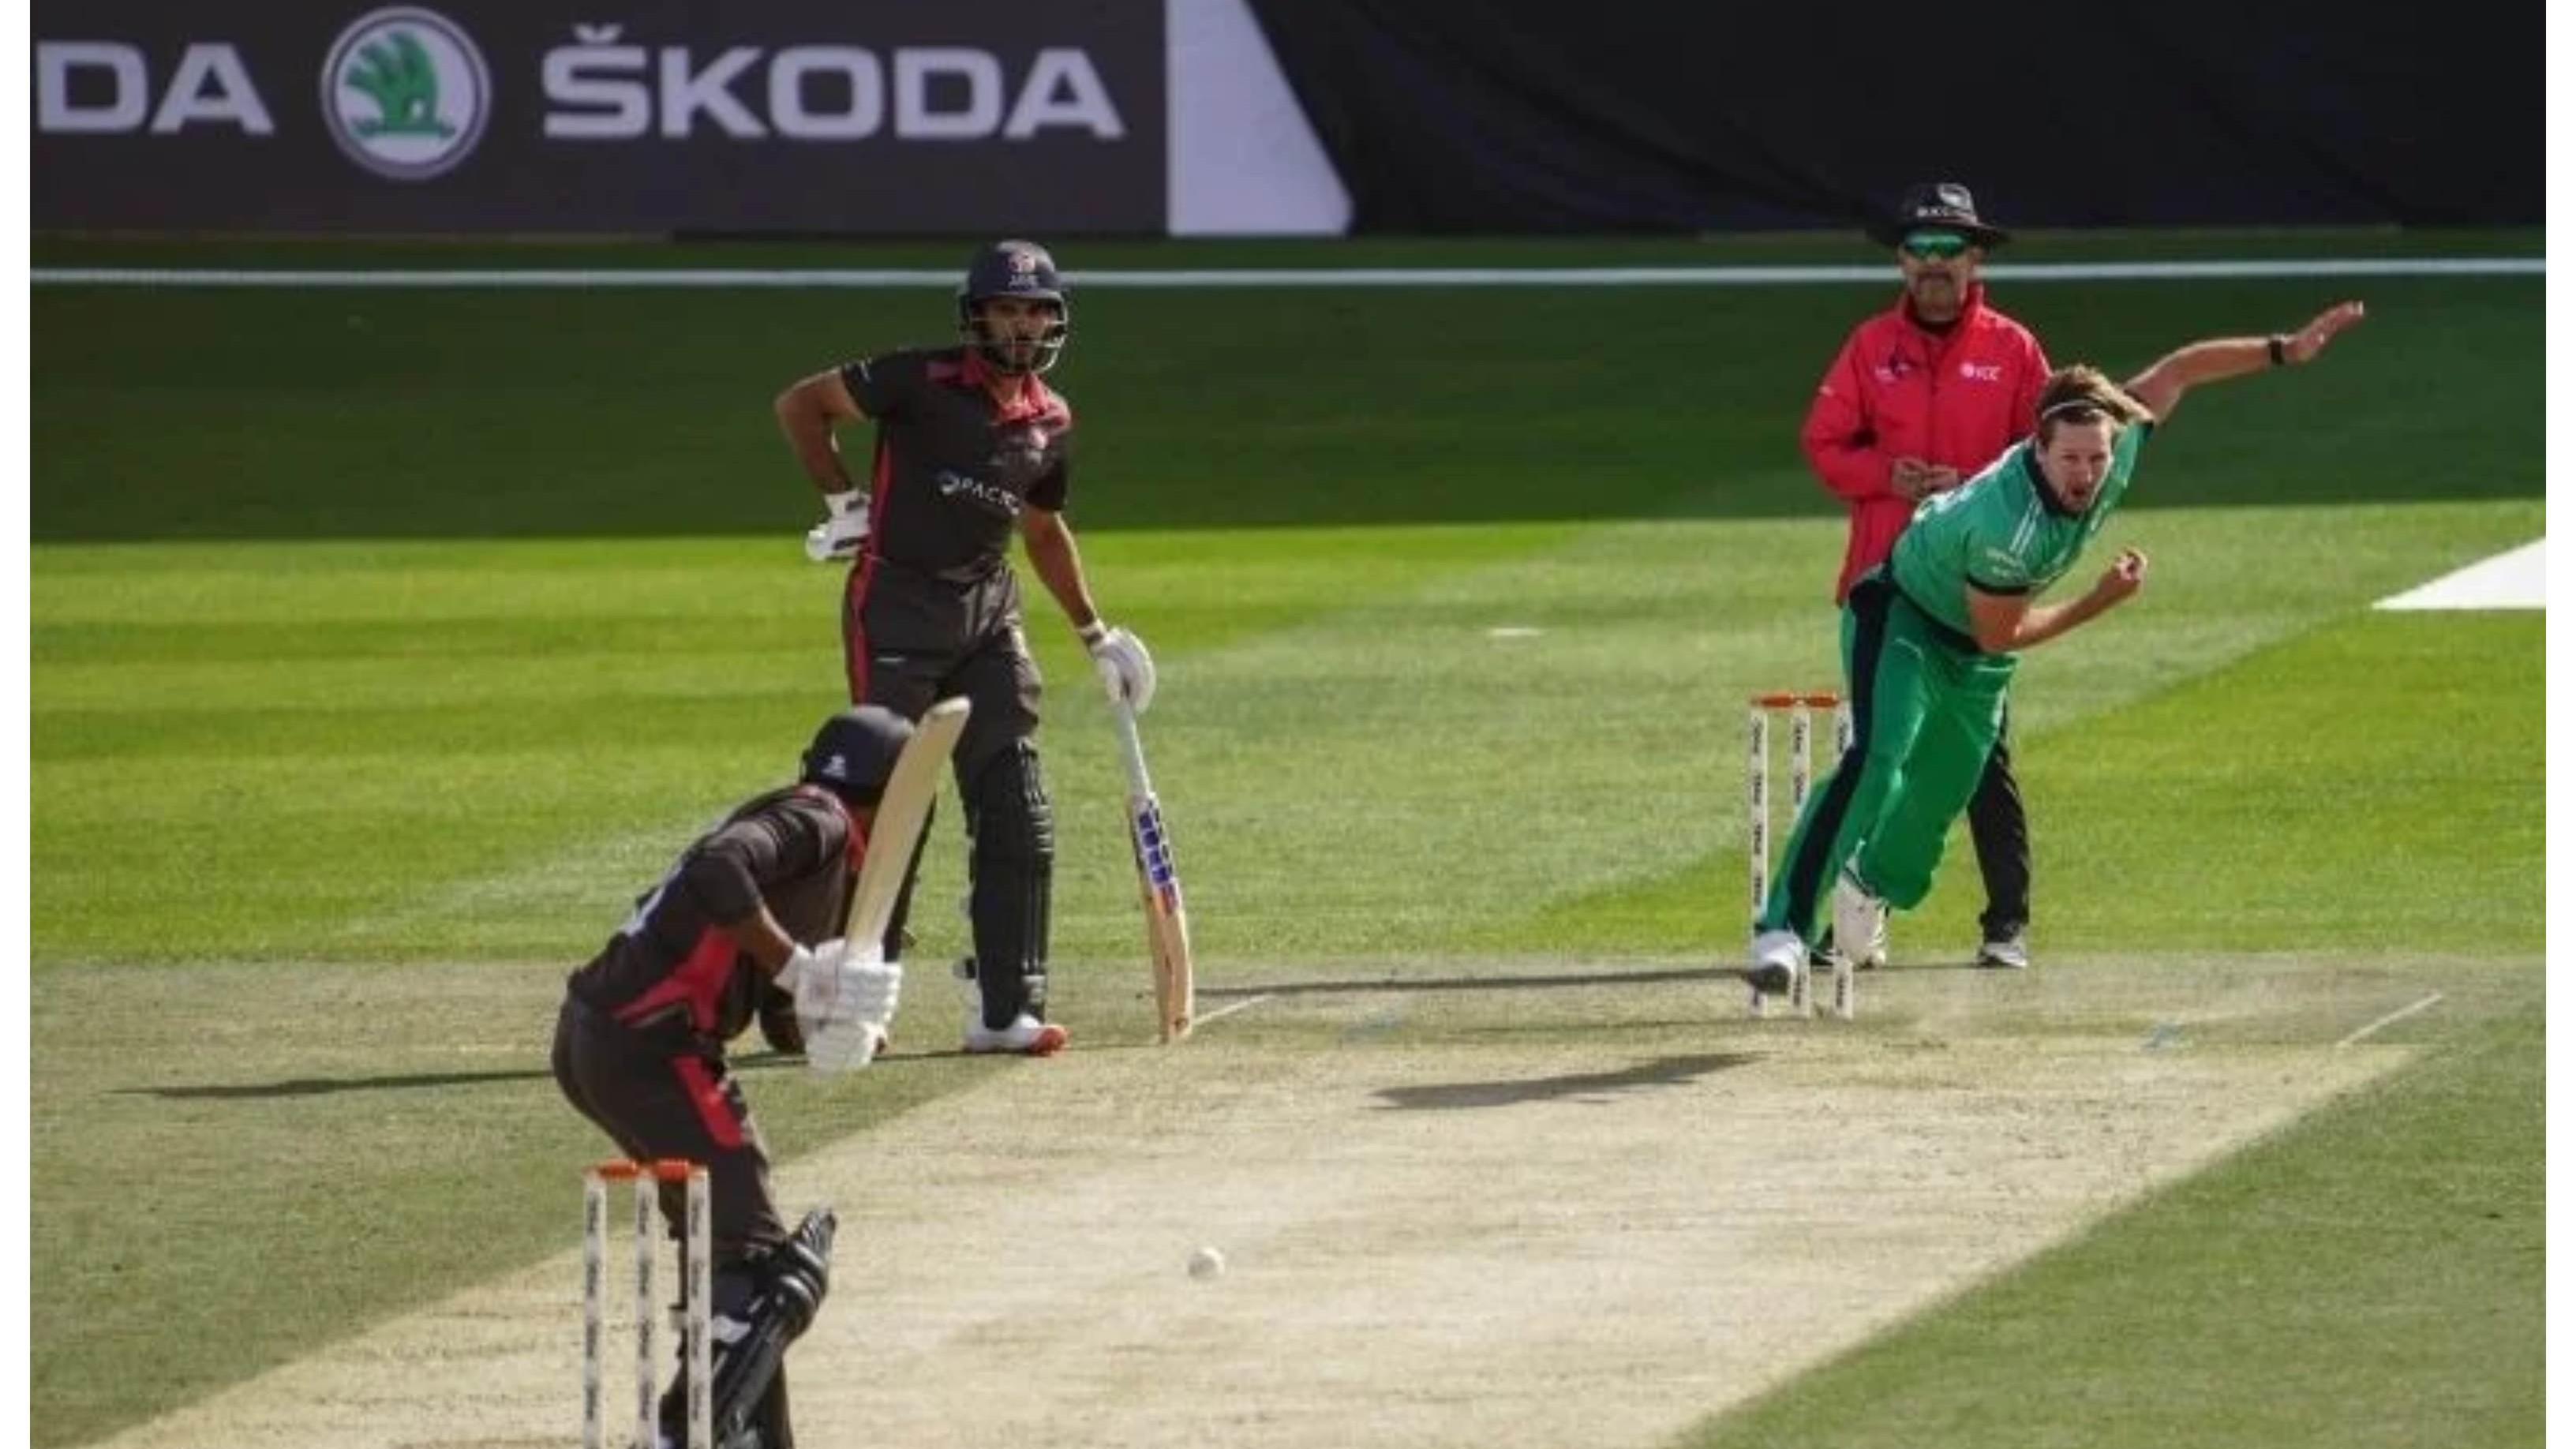 UAE v IRE 2021: Second ODI postponed after another player of home team tests positive for COVID-19